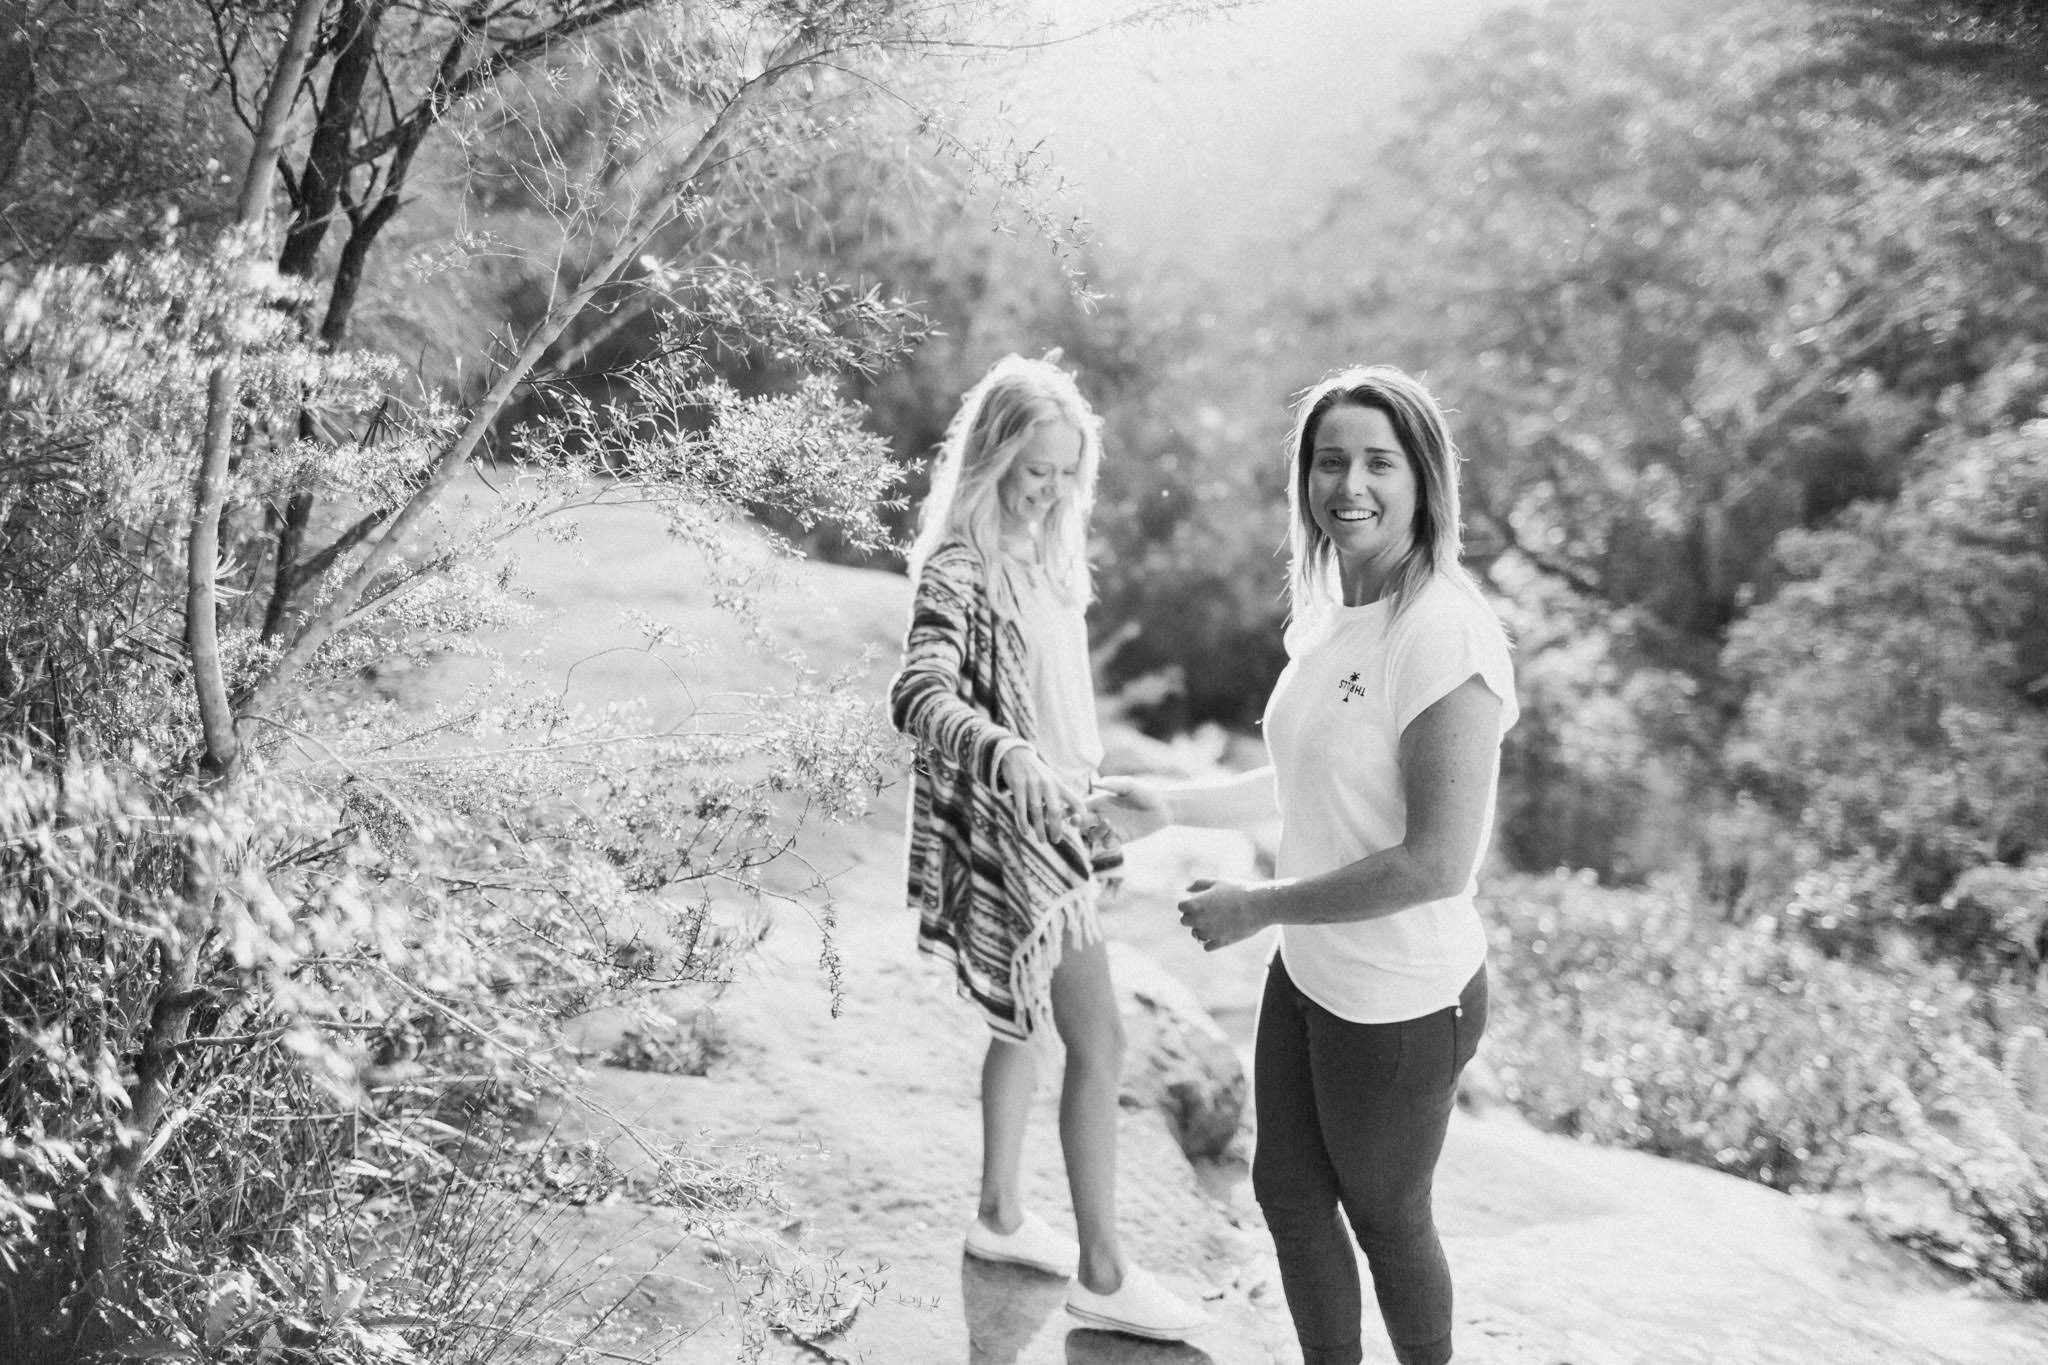 Bri_Gem_Proposal_LaurenAnnePhotography-1084.jpg